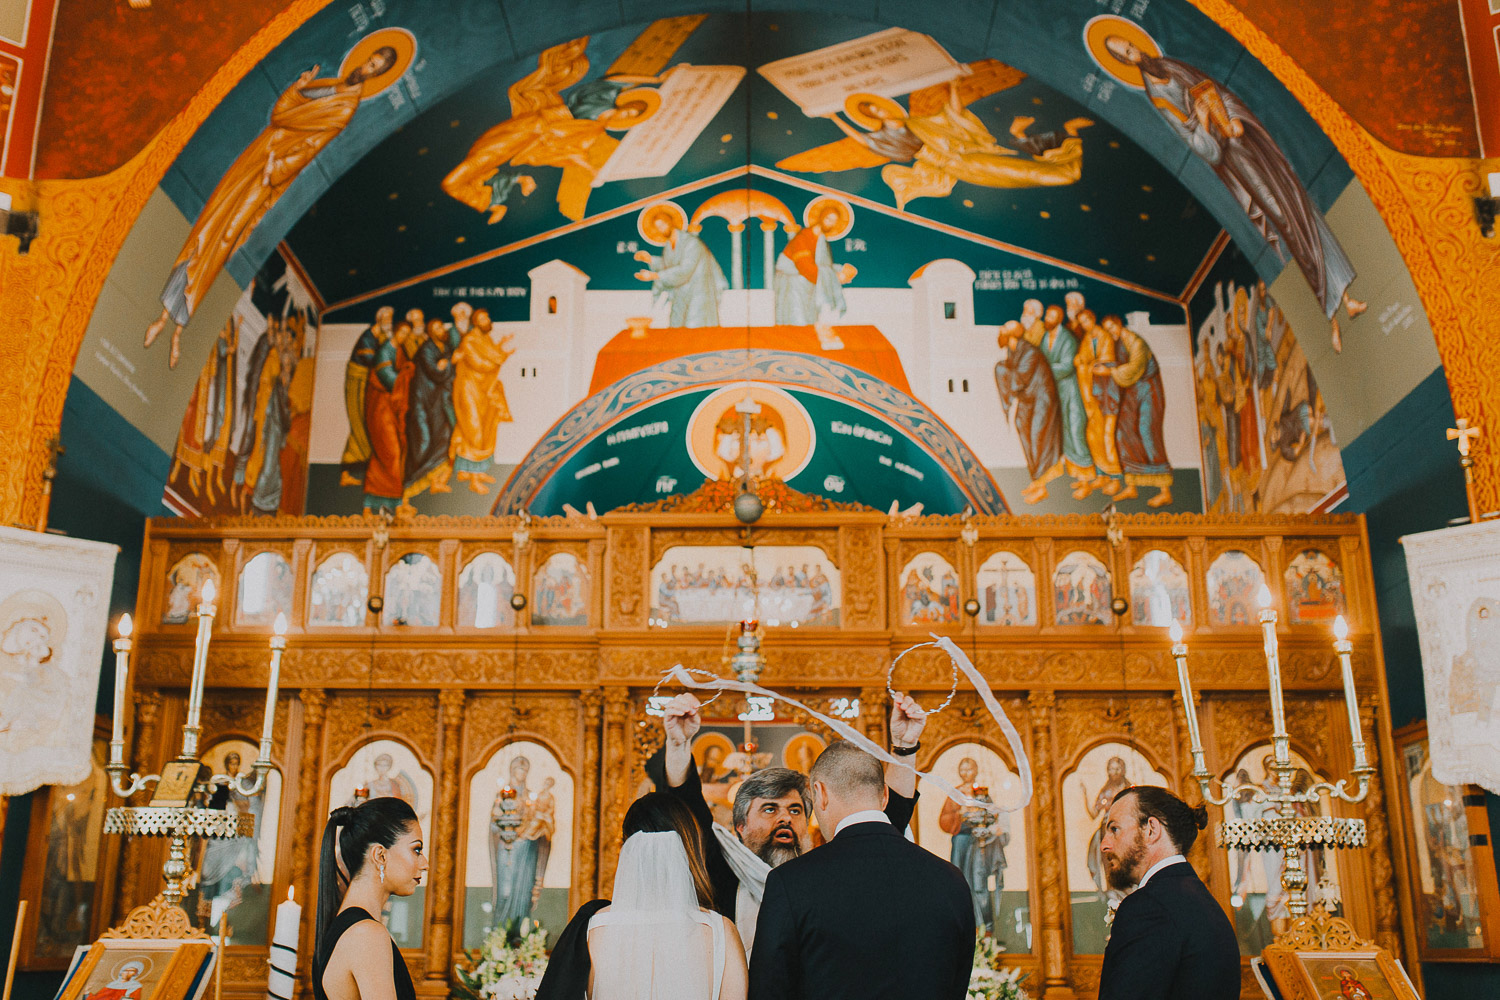 Greek wedding rituals